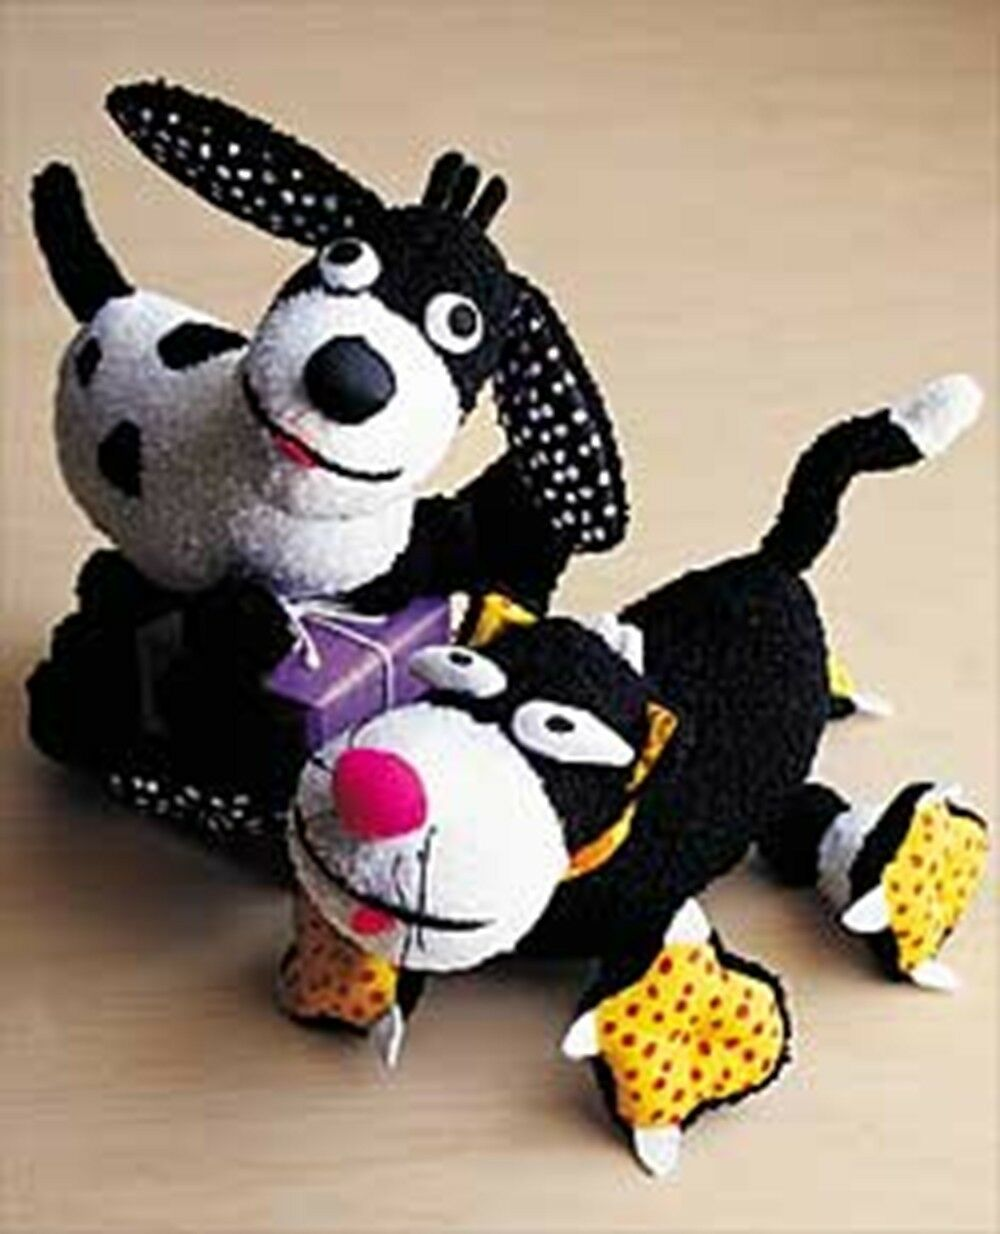 New NWT Rare Hoopla by Andre Pupito the dog and Feleeni the cat Stuffed Toys